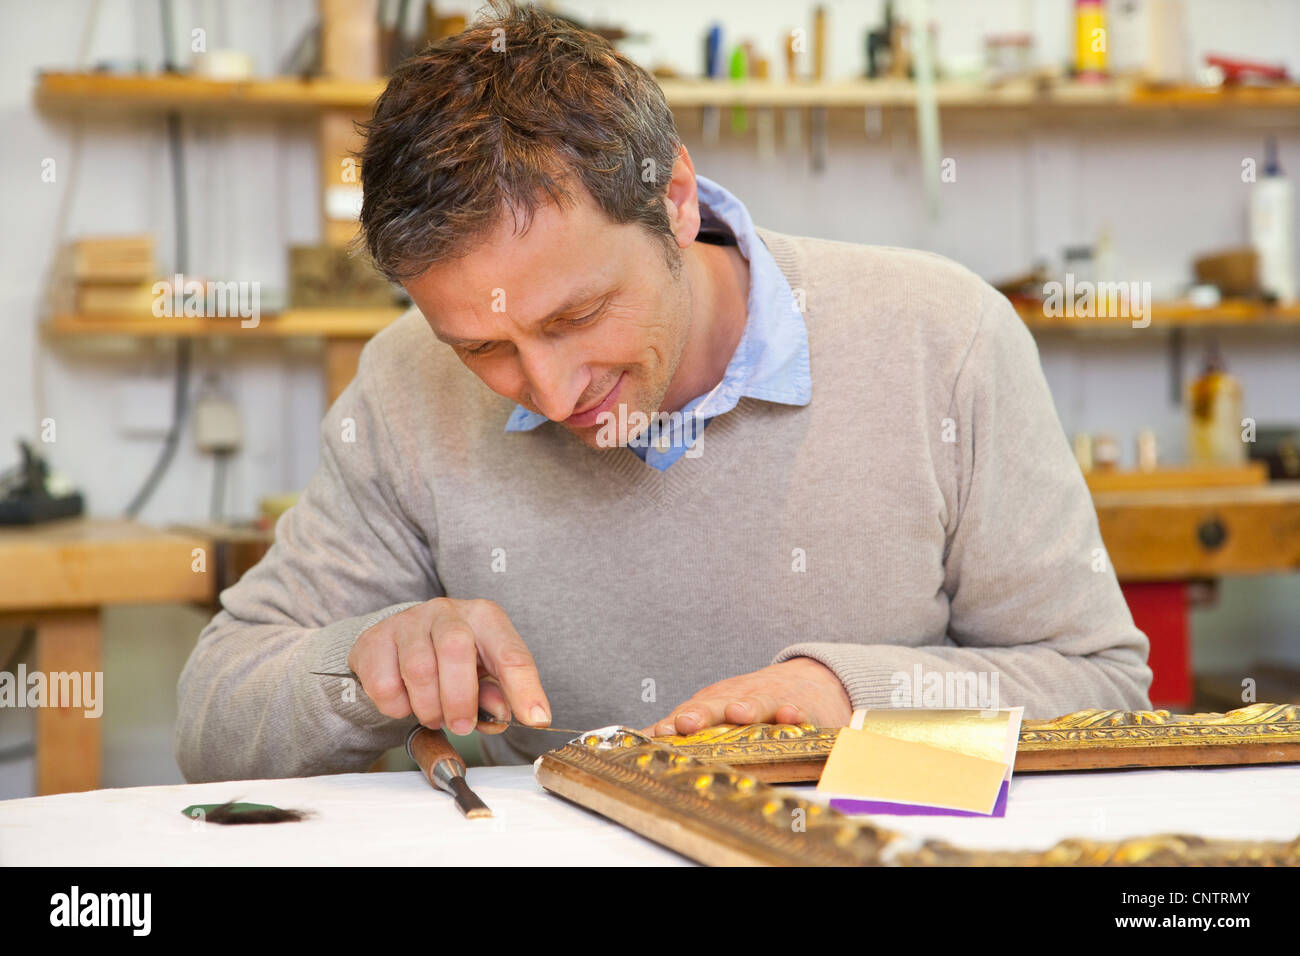 Carpenter working in shop - Stock Image